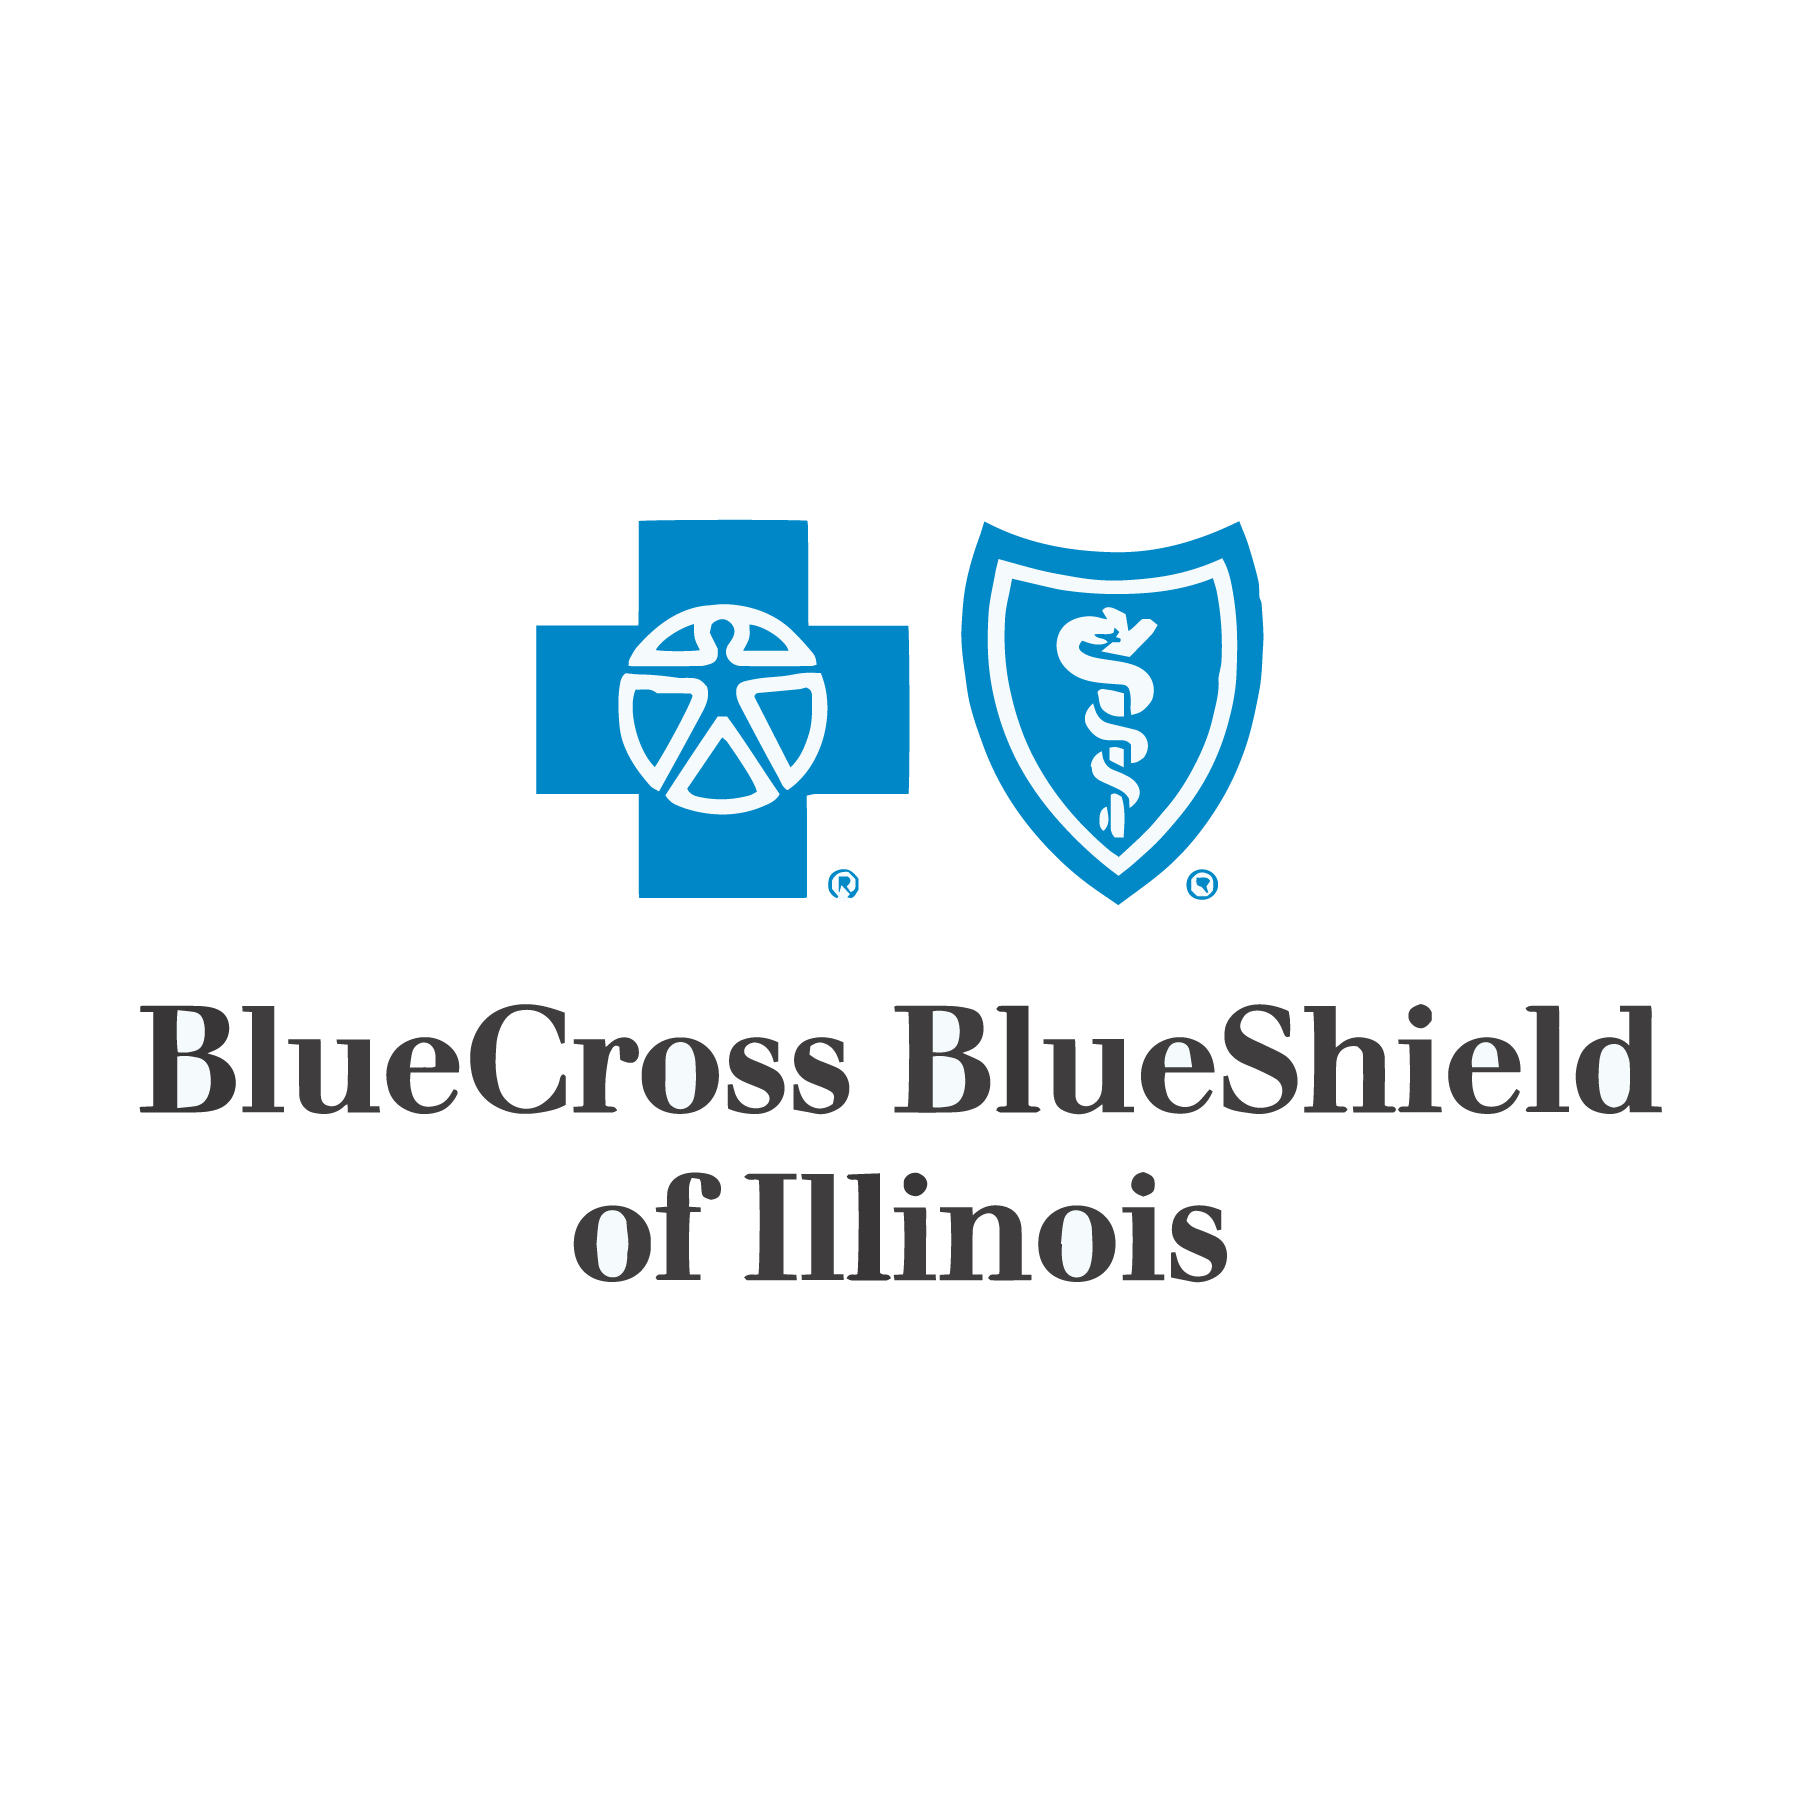 bcbsi Blue Cross Blue Shield of Illinois - Chicago Commons